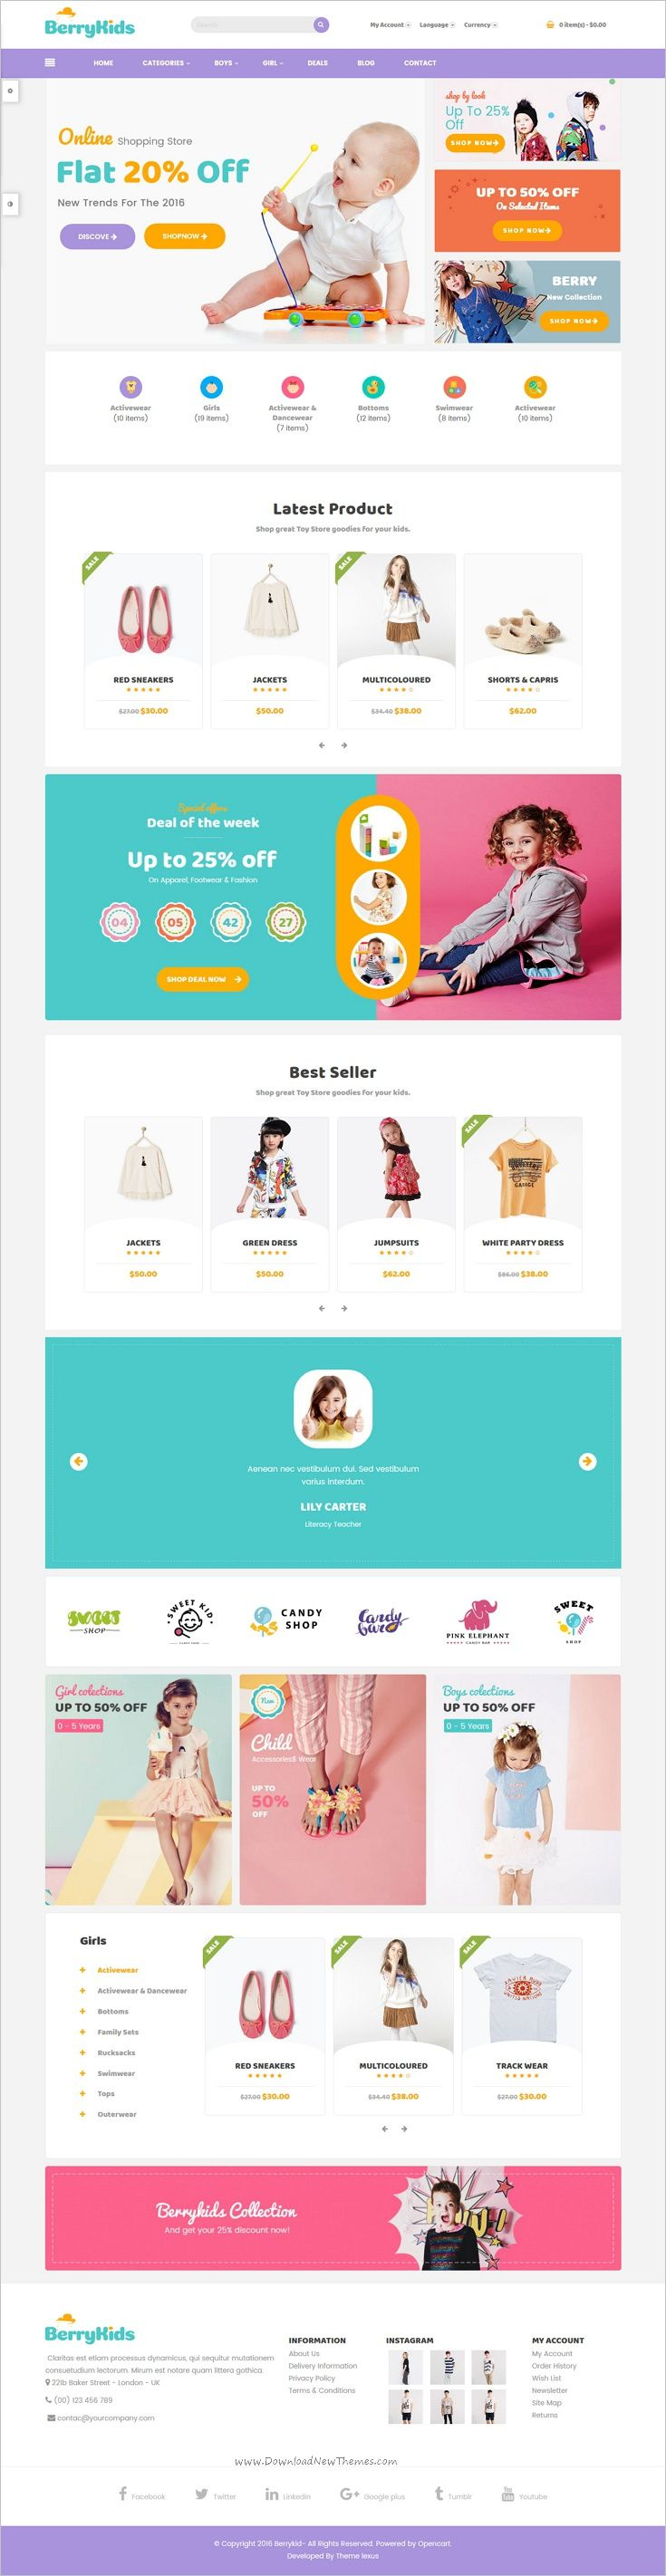 Lexus Berrykid is a creative and powerful 4in1 responsive @Opencart theme for #kids, toys online shop #eCommerce website with ultimate core features download now➩ https://themeforest.net/item/lexus-berrykid-kid-shop-opencart-theme/19087005?ref=Datasata